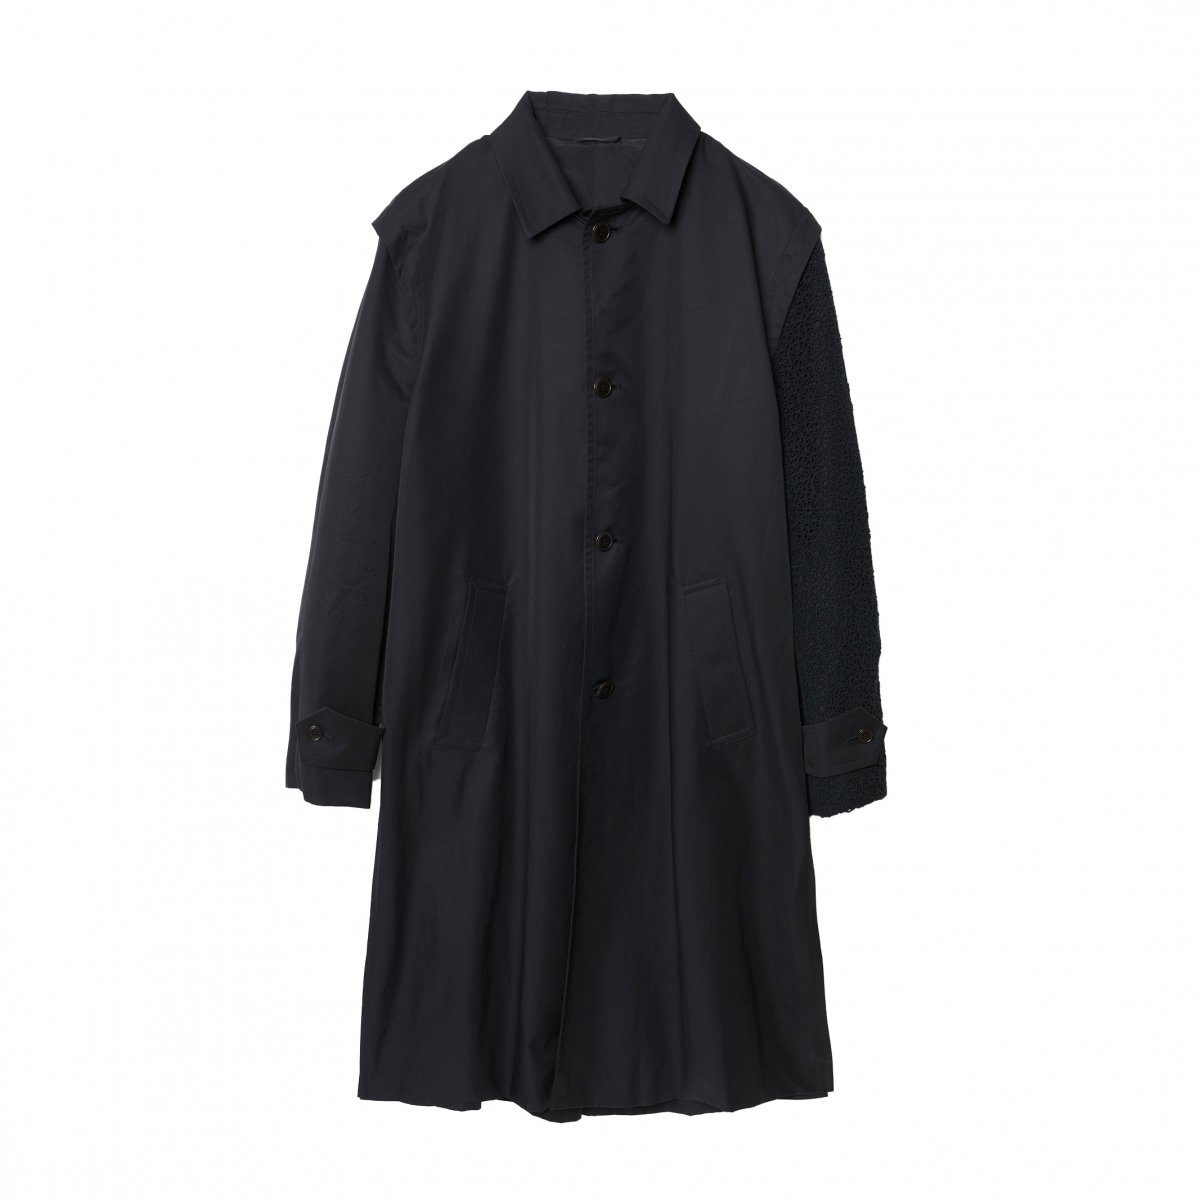 <img class='new_mark_img1' src='https://img.shop-pro.jp/img/new/icons5.gif' style='border:none;display:inline;margin:0px;padding:0px;width:auto;' />OLMETEX COTTON NYLON ONE ARM LOWDEN COAT / BLACK